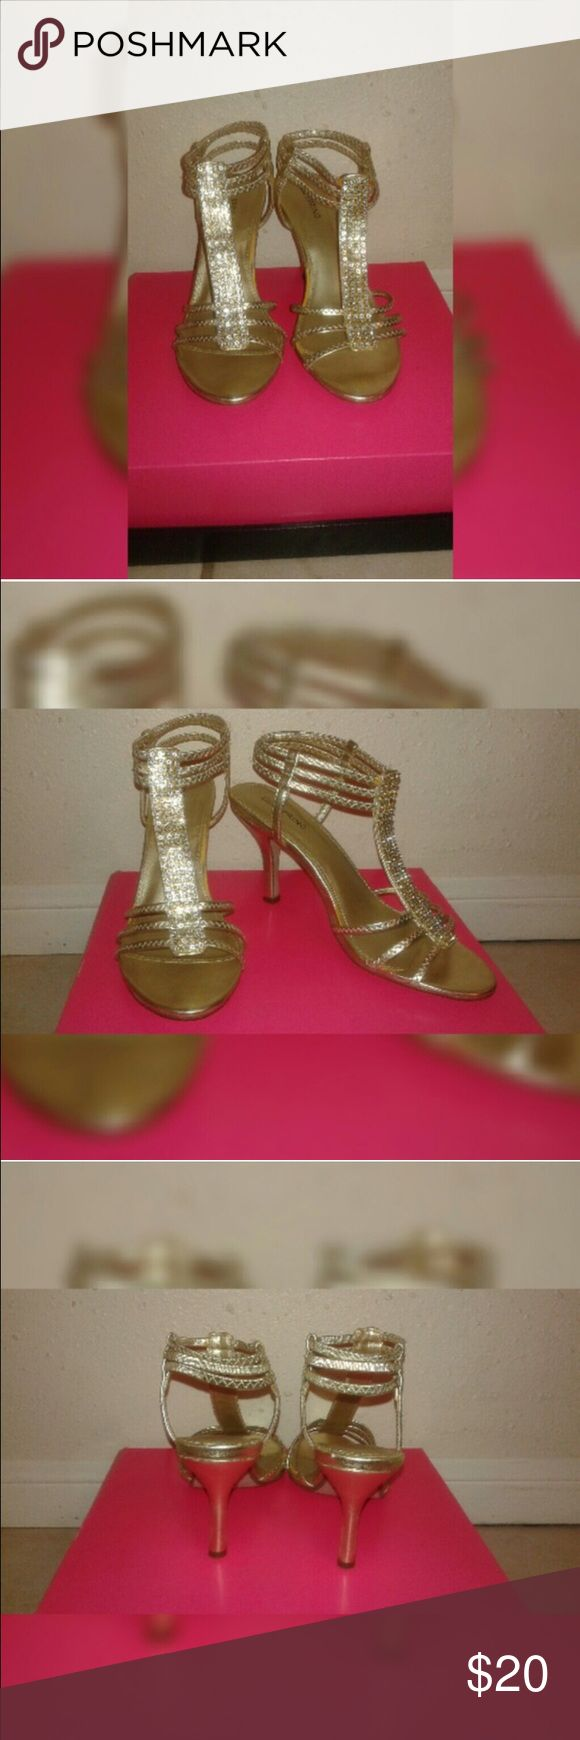 Gold Open Toe Heel Reposhing. These were sold to me as size 8.5 and they are actually size 8. I was so bummed because they would have been perfect!! Literally excellent condition. 3 inch heel. 💜 Shoes Heels